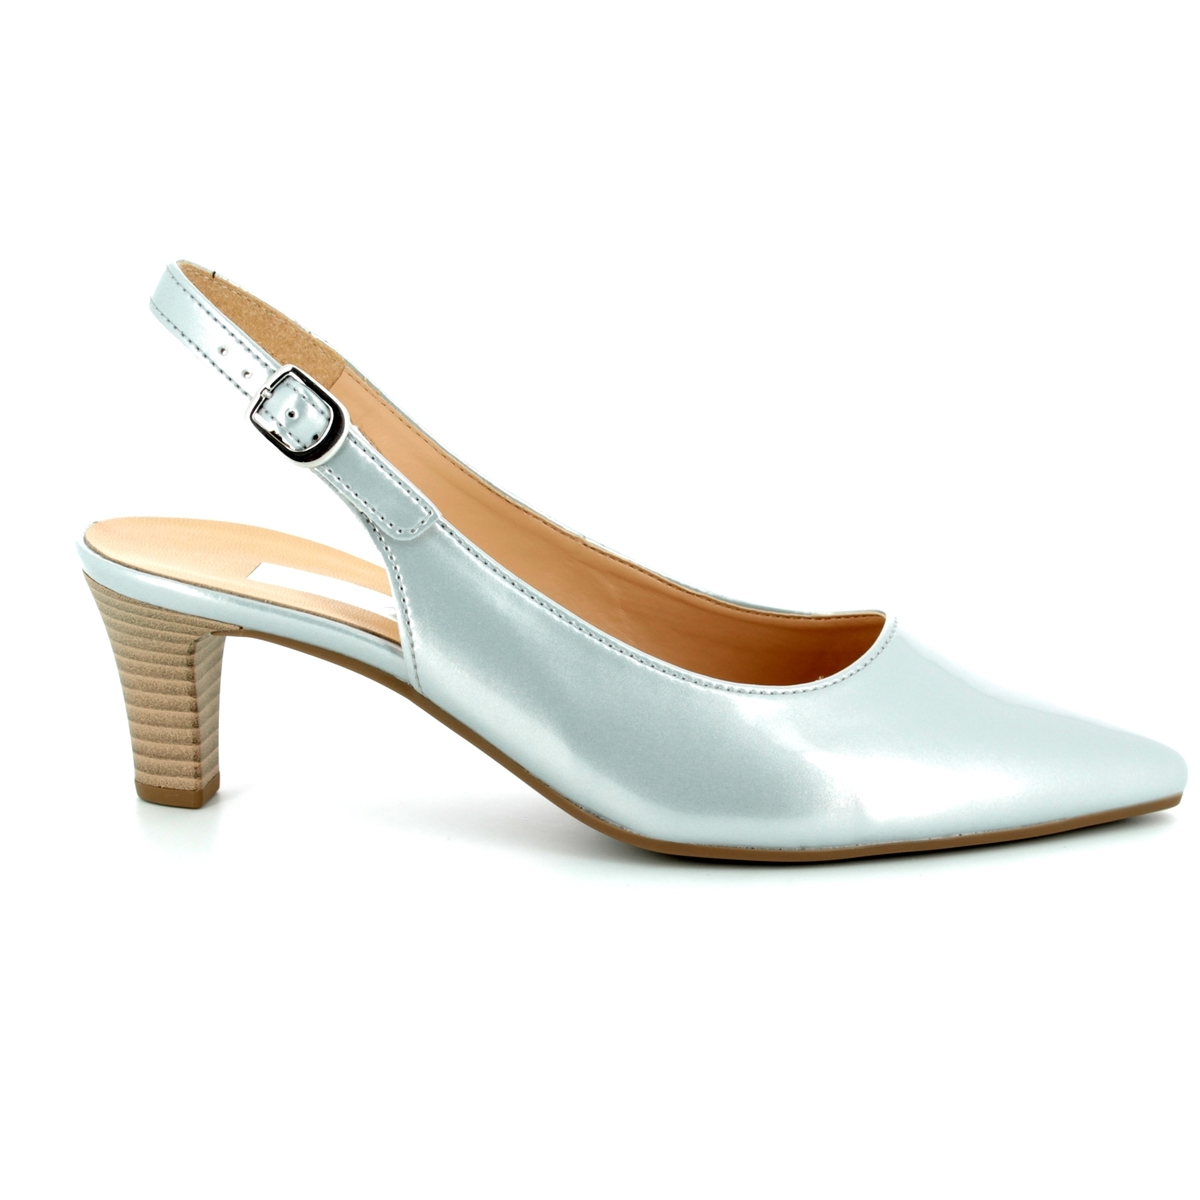 0b1df3be2e1 Gabor High-heeled Shoes - Silver - 81.550.92 HUME 2